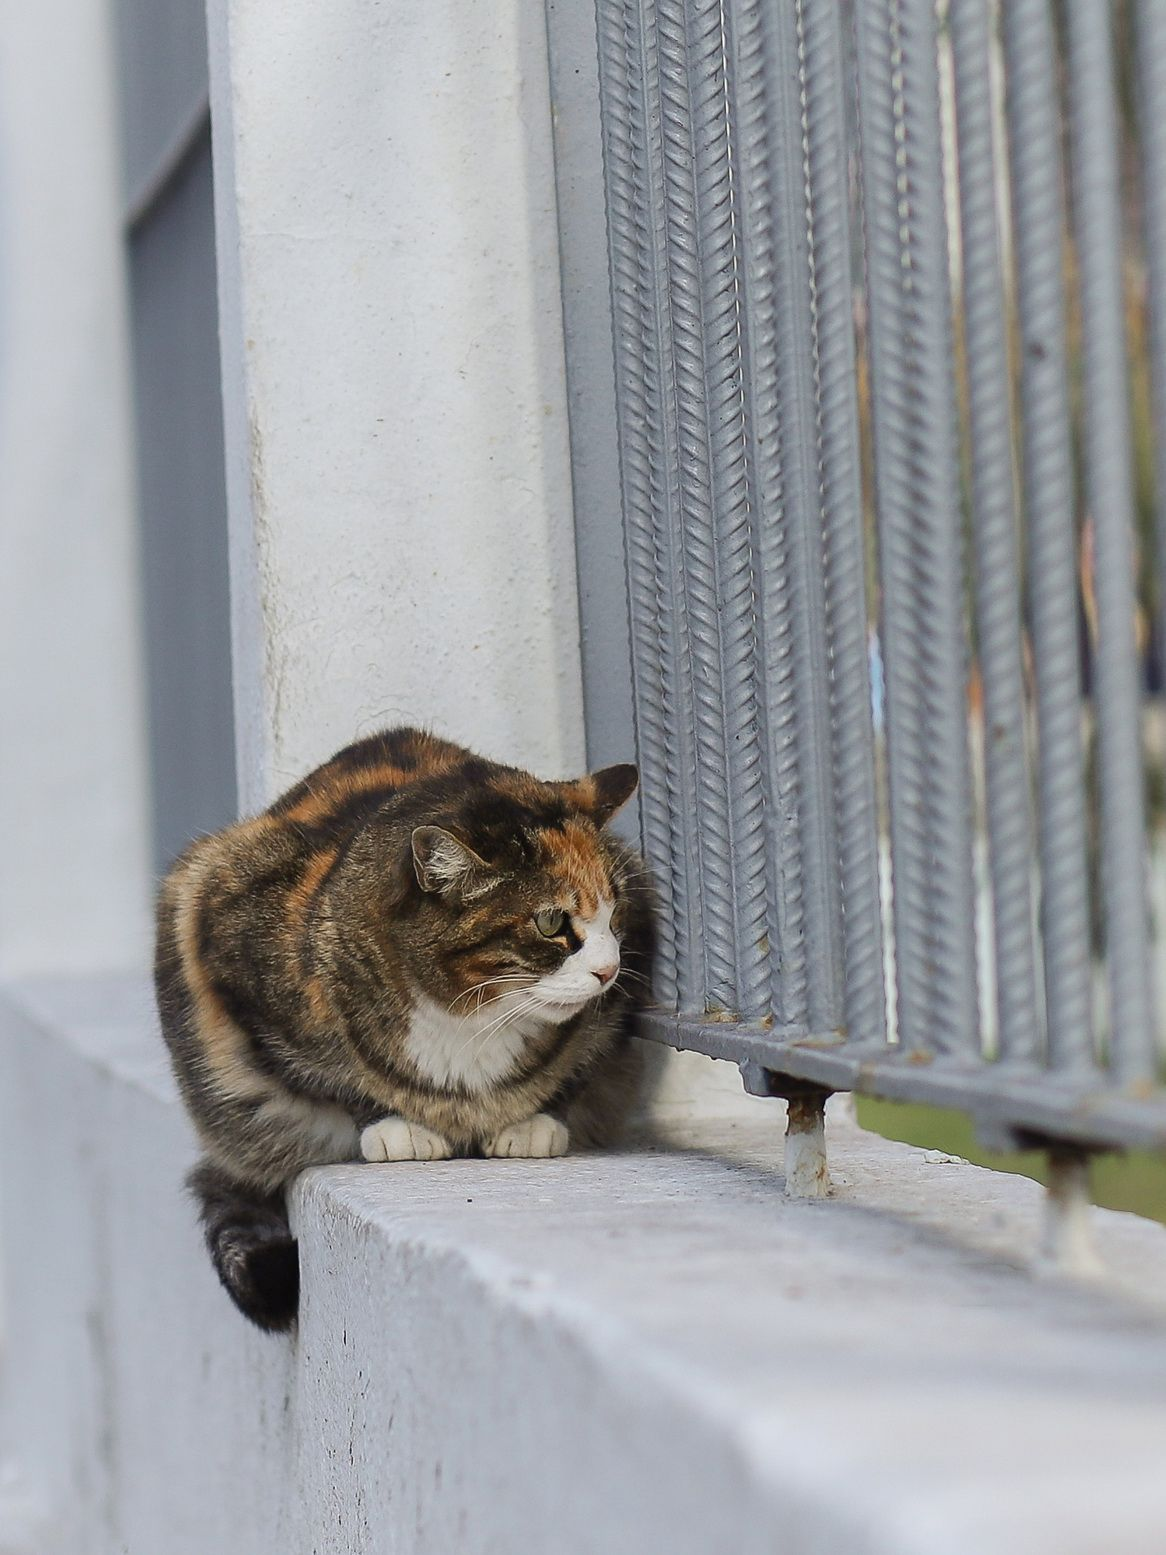 Stray cats at Istanbul/Turkey Cats, Stray cat, Animals